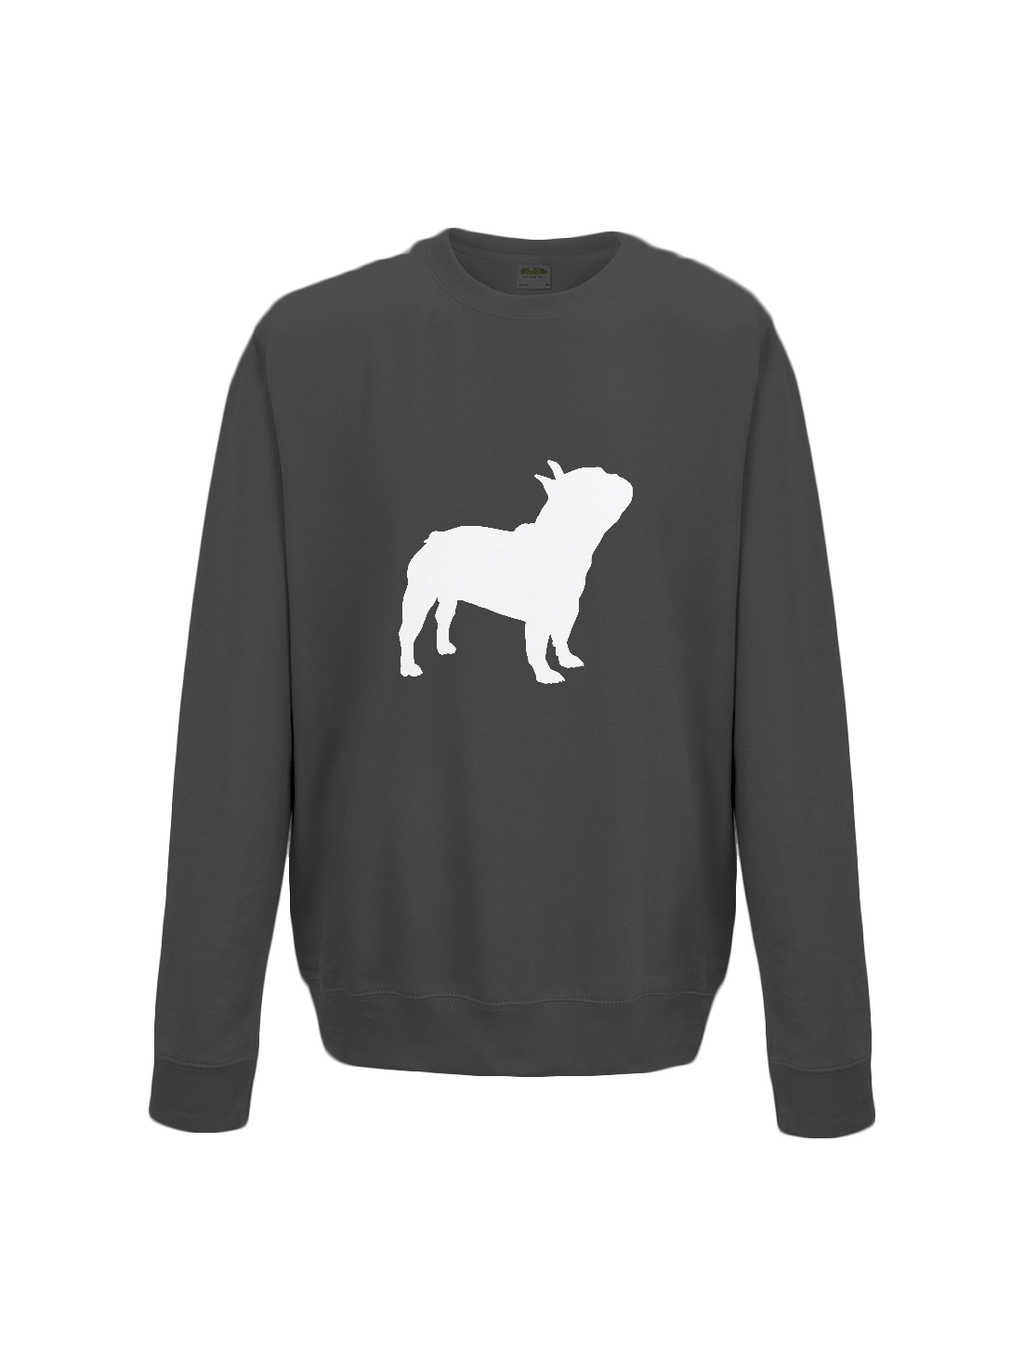 FRENCHIE sweatshirt in black